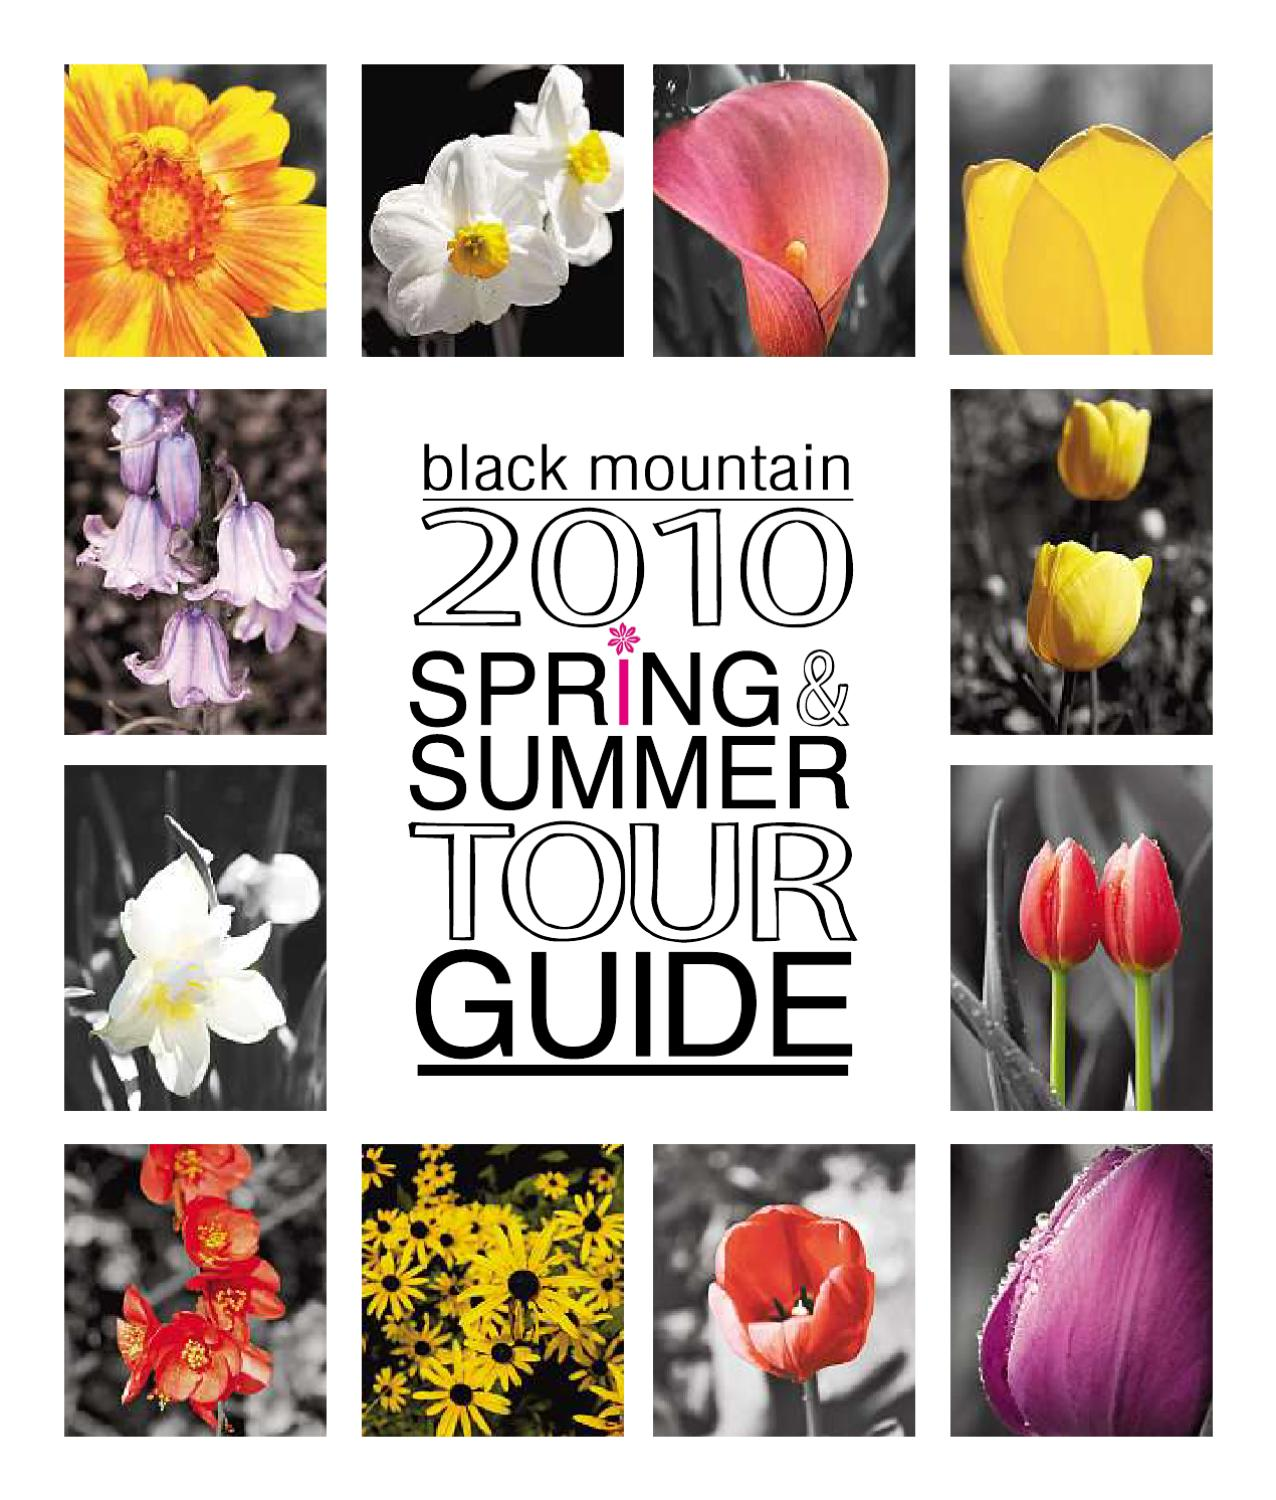 black mountain 2010 spring summer tour guide by stacey issuu. Black Bedroom Furniture Sets. Home Design Ideas